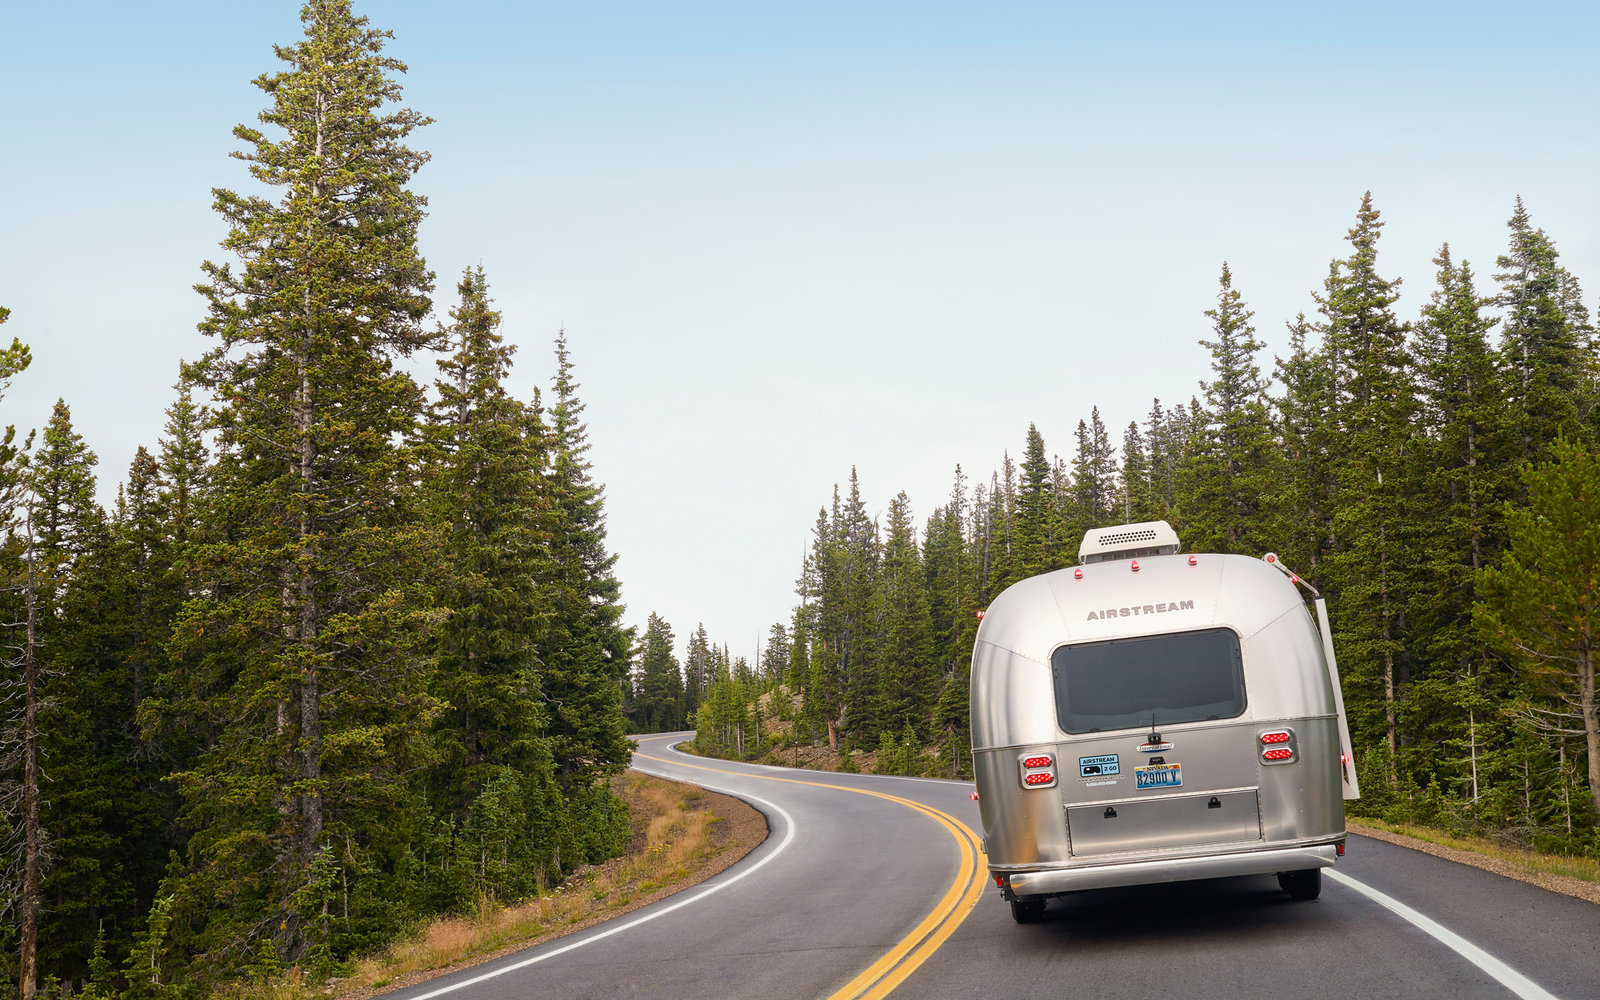 Airstream Road Trip